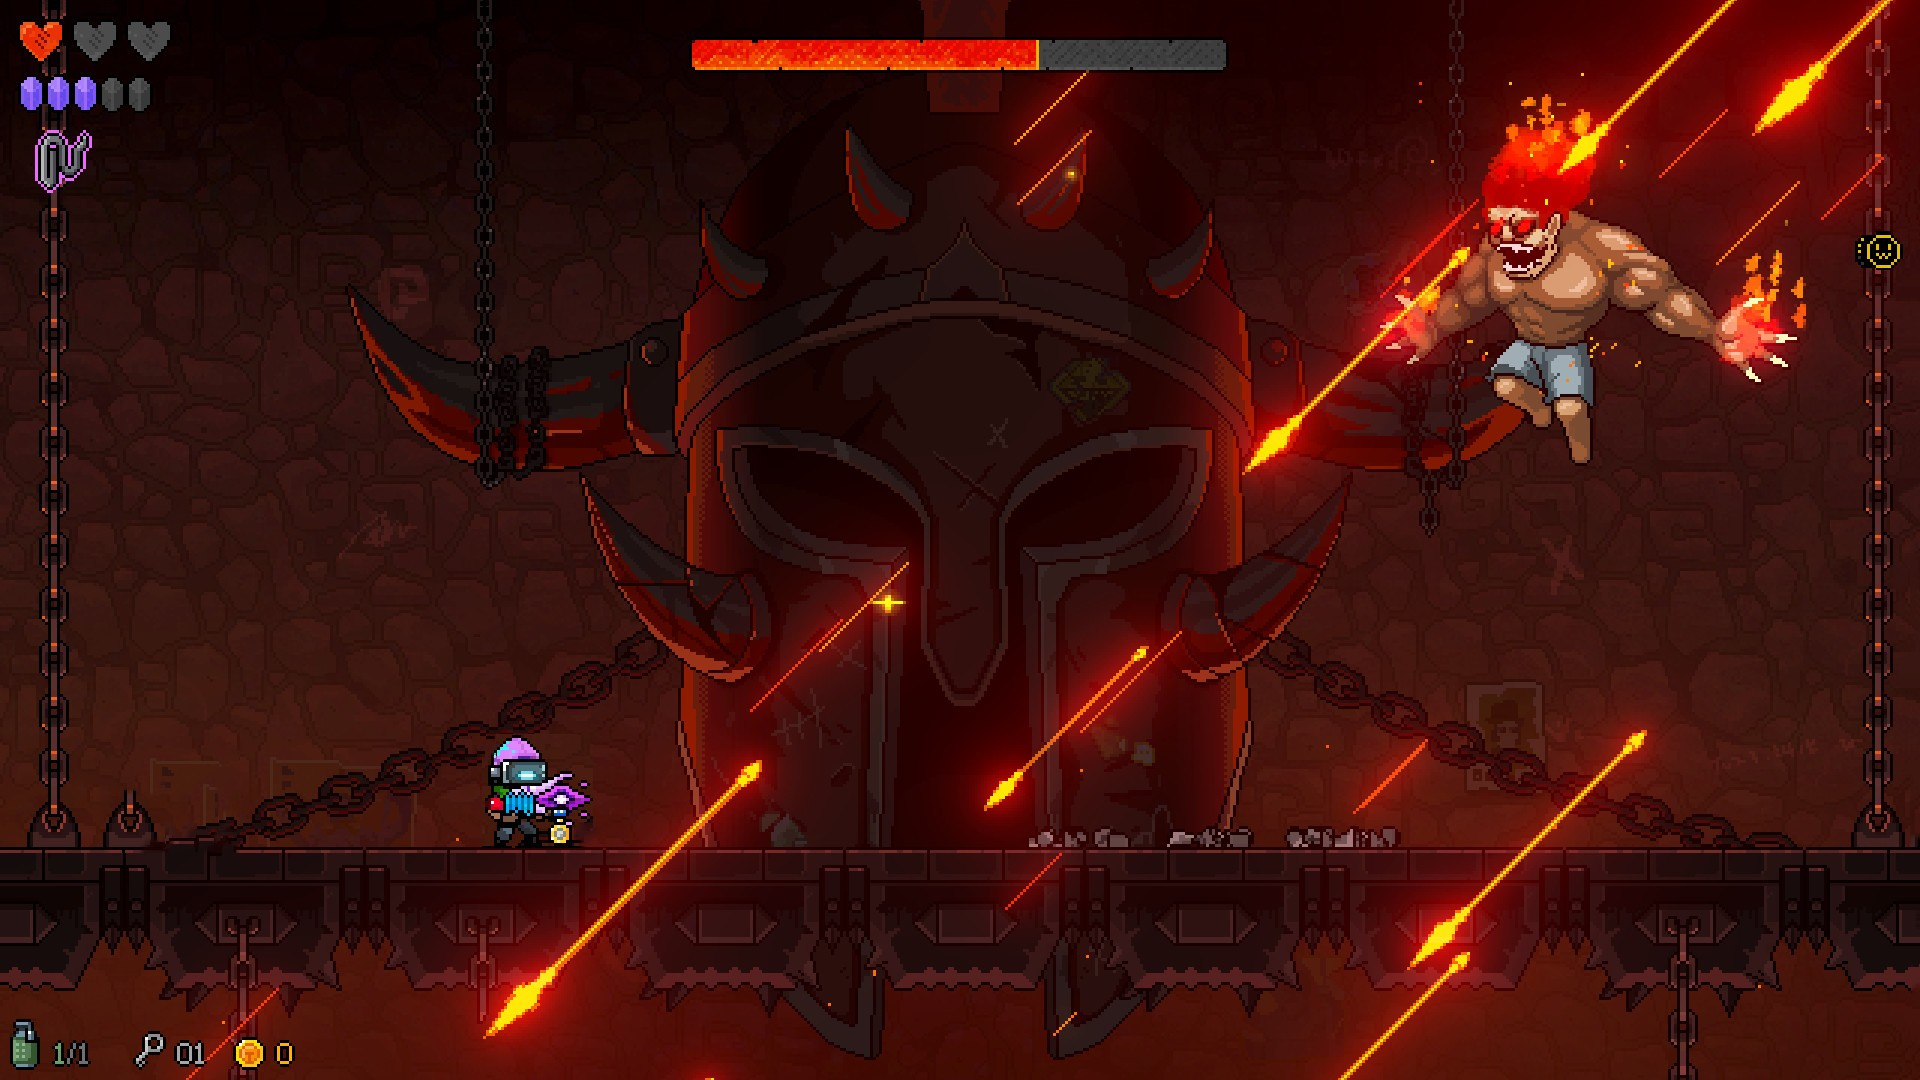 Neon Abyss Review Bonus Stage Is The World S Leading Source For Ps4 Xbox One Ps3 Xbox 360 Wii U Ps Vita Wii Pc 3ds And Ds Video Game Reviews With 5400 To Date